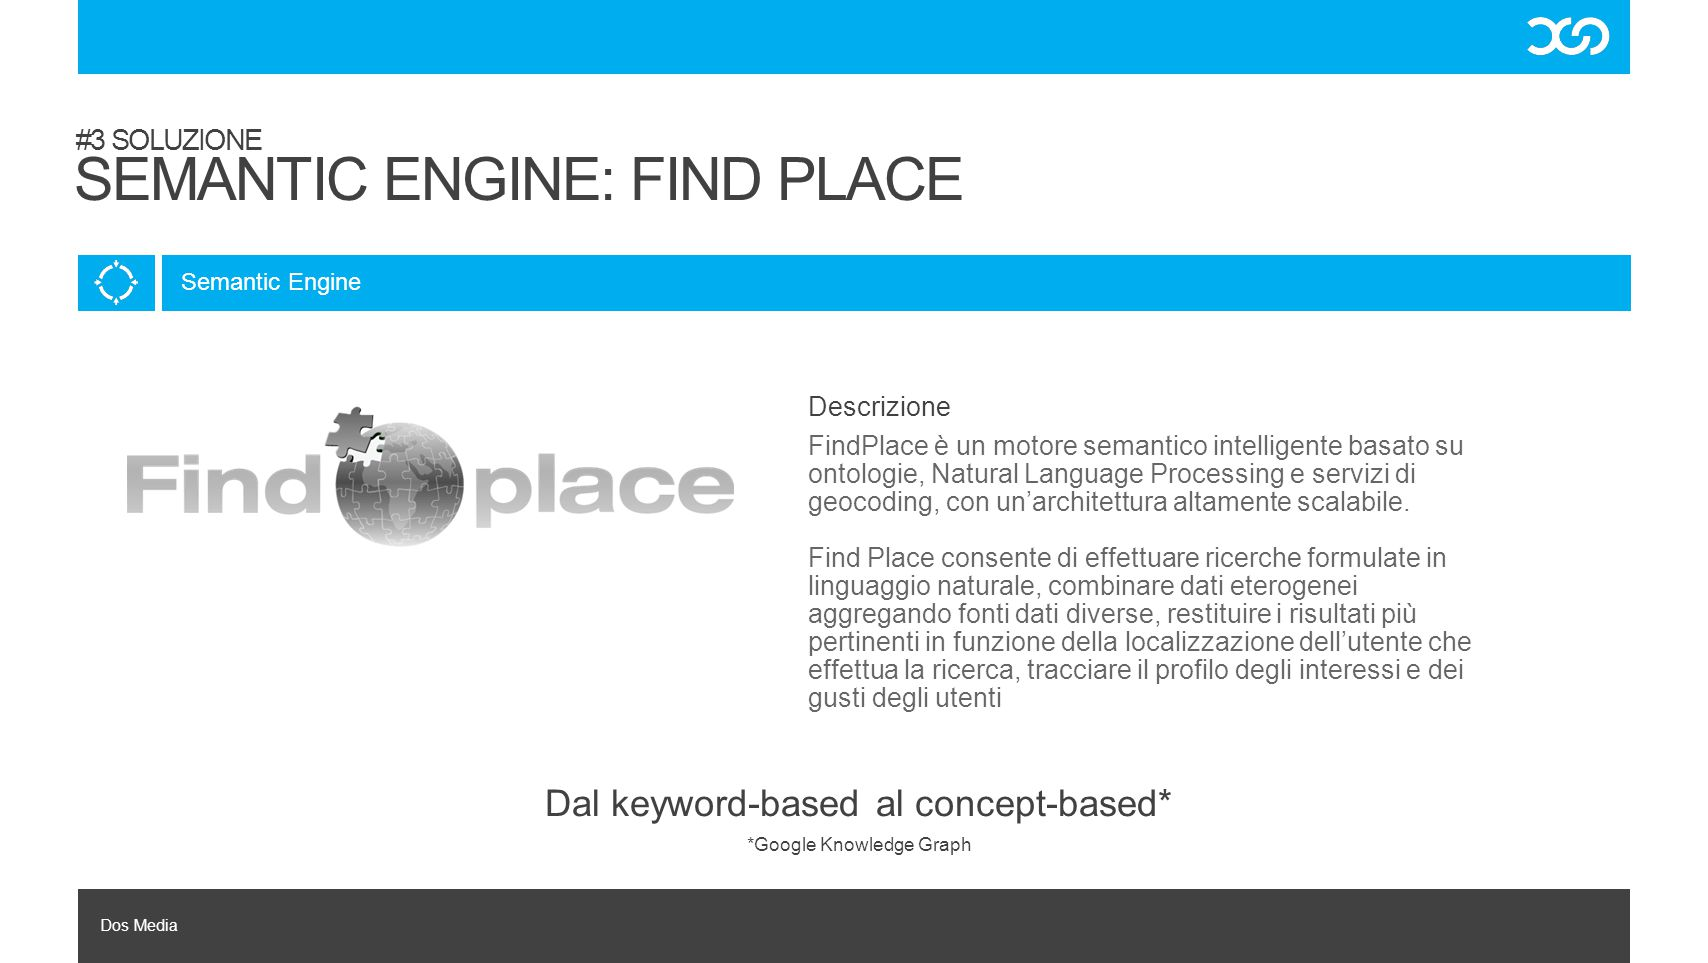 semantic engine: Find place